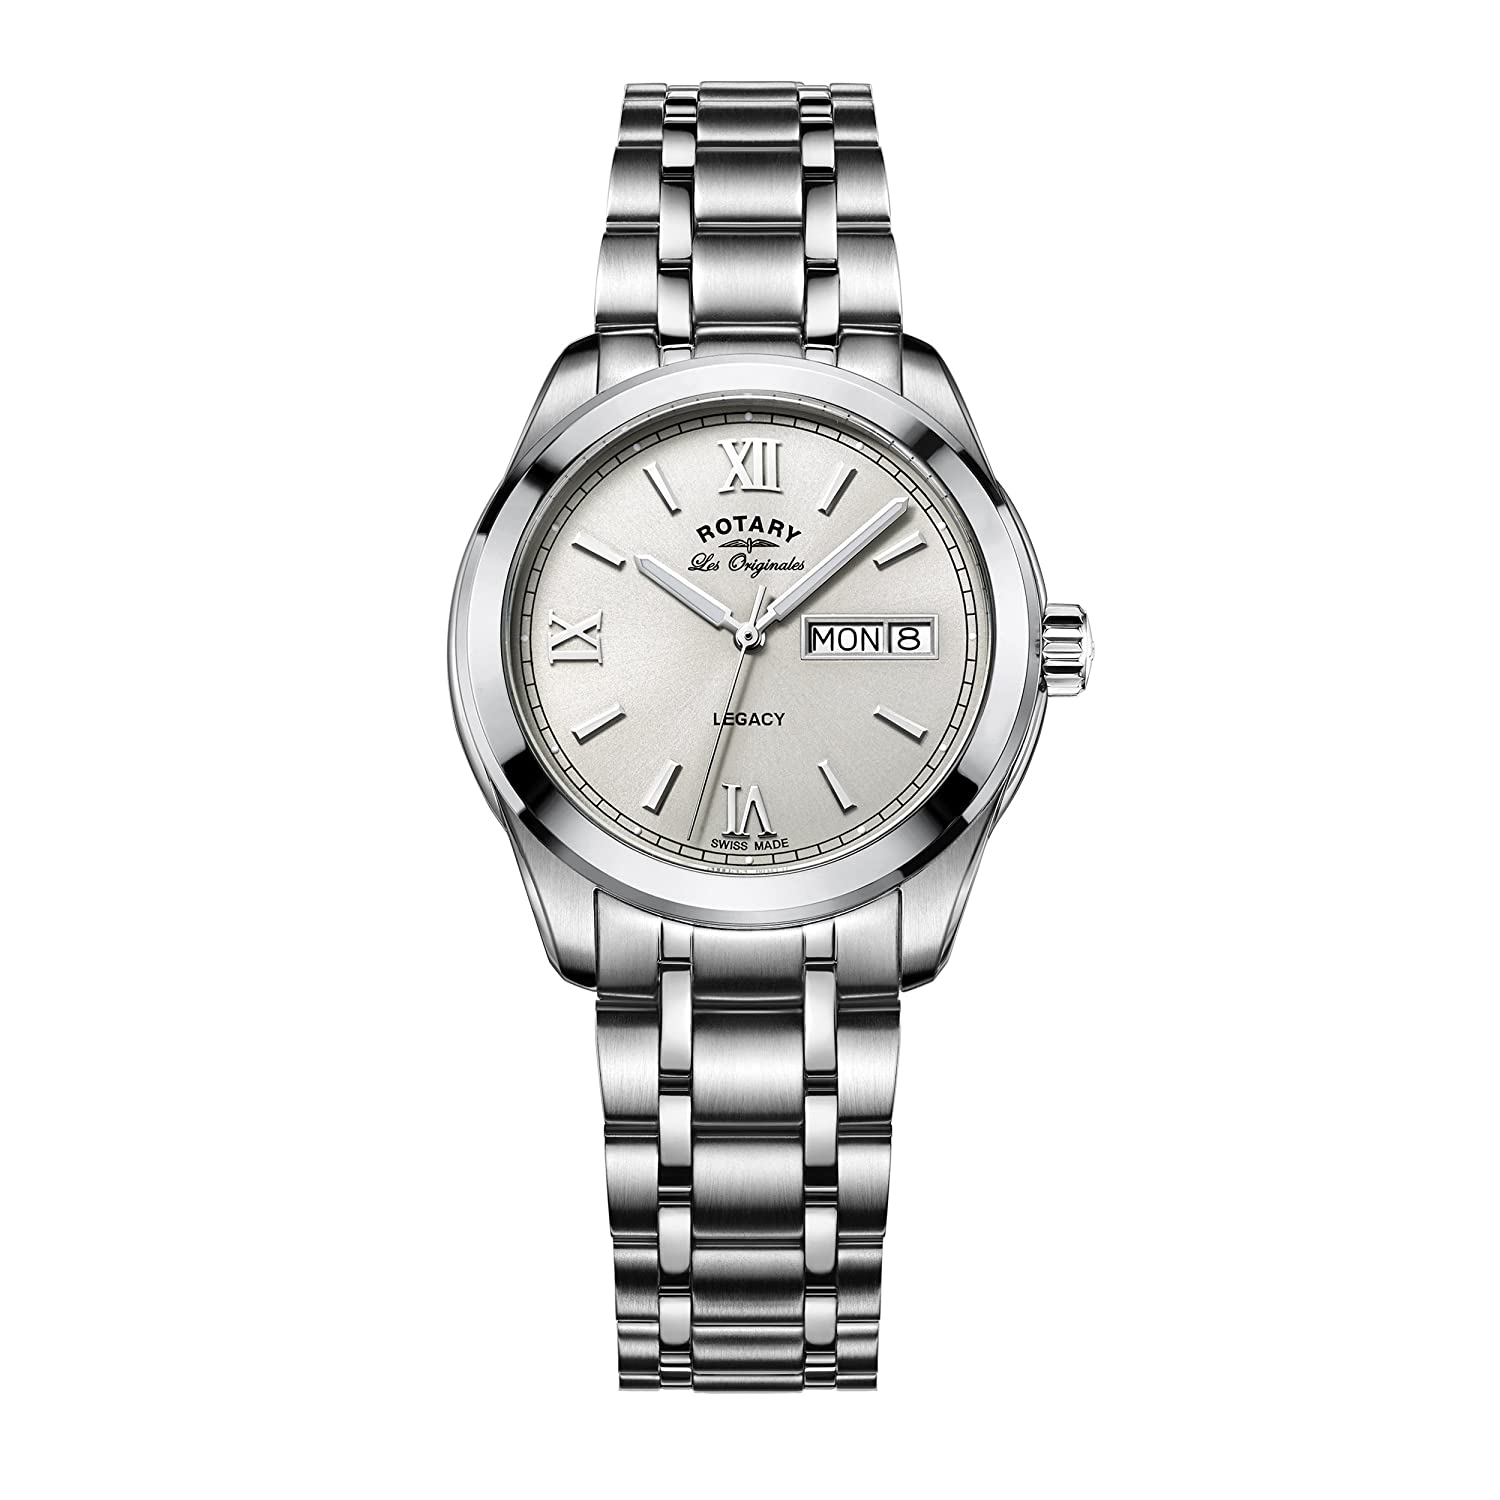 4e17a783214a Rotary Men s Quartz Watch with Off-White Dial Analogue Display and Silver  Stainless Steel Bracelet GB90173 06  Amazon.co.uk  Watches